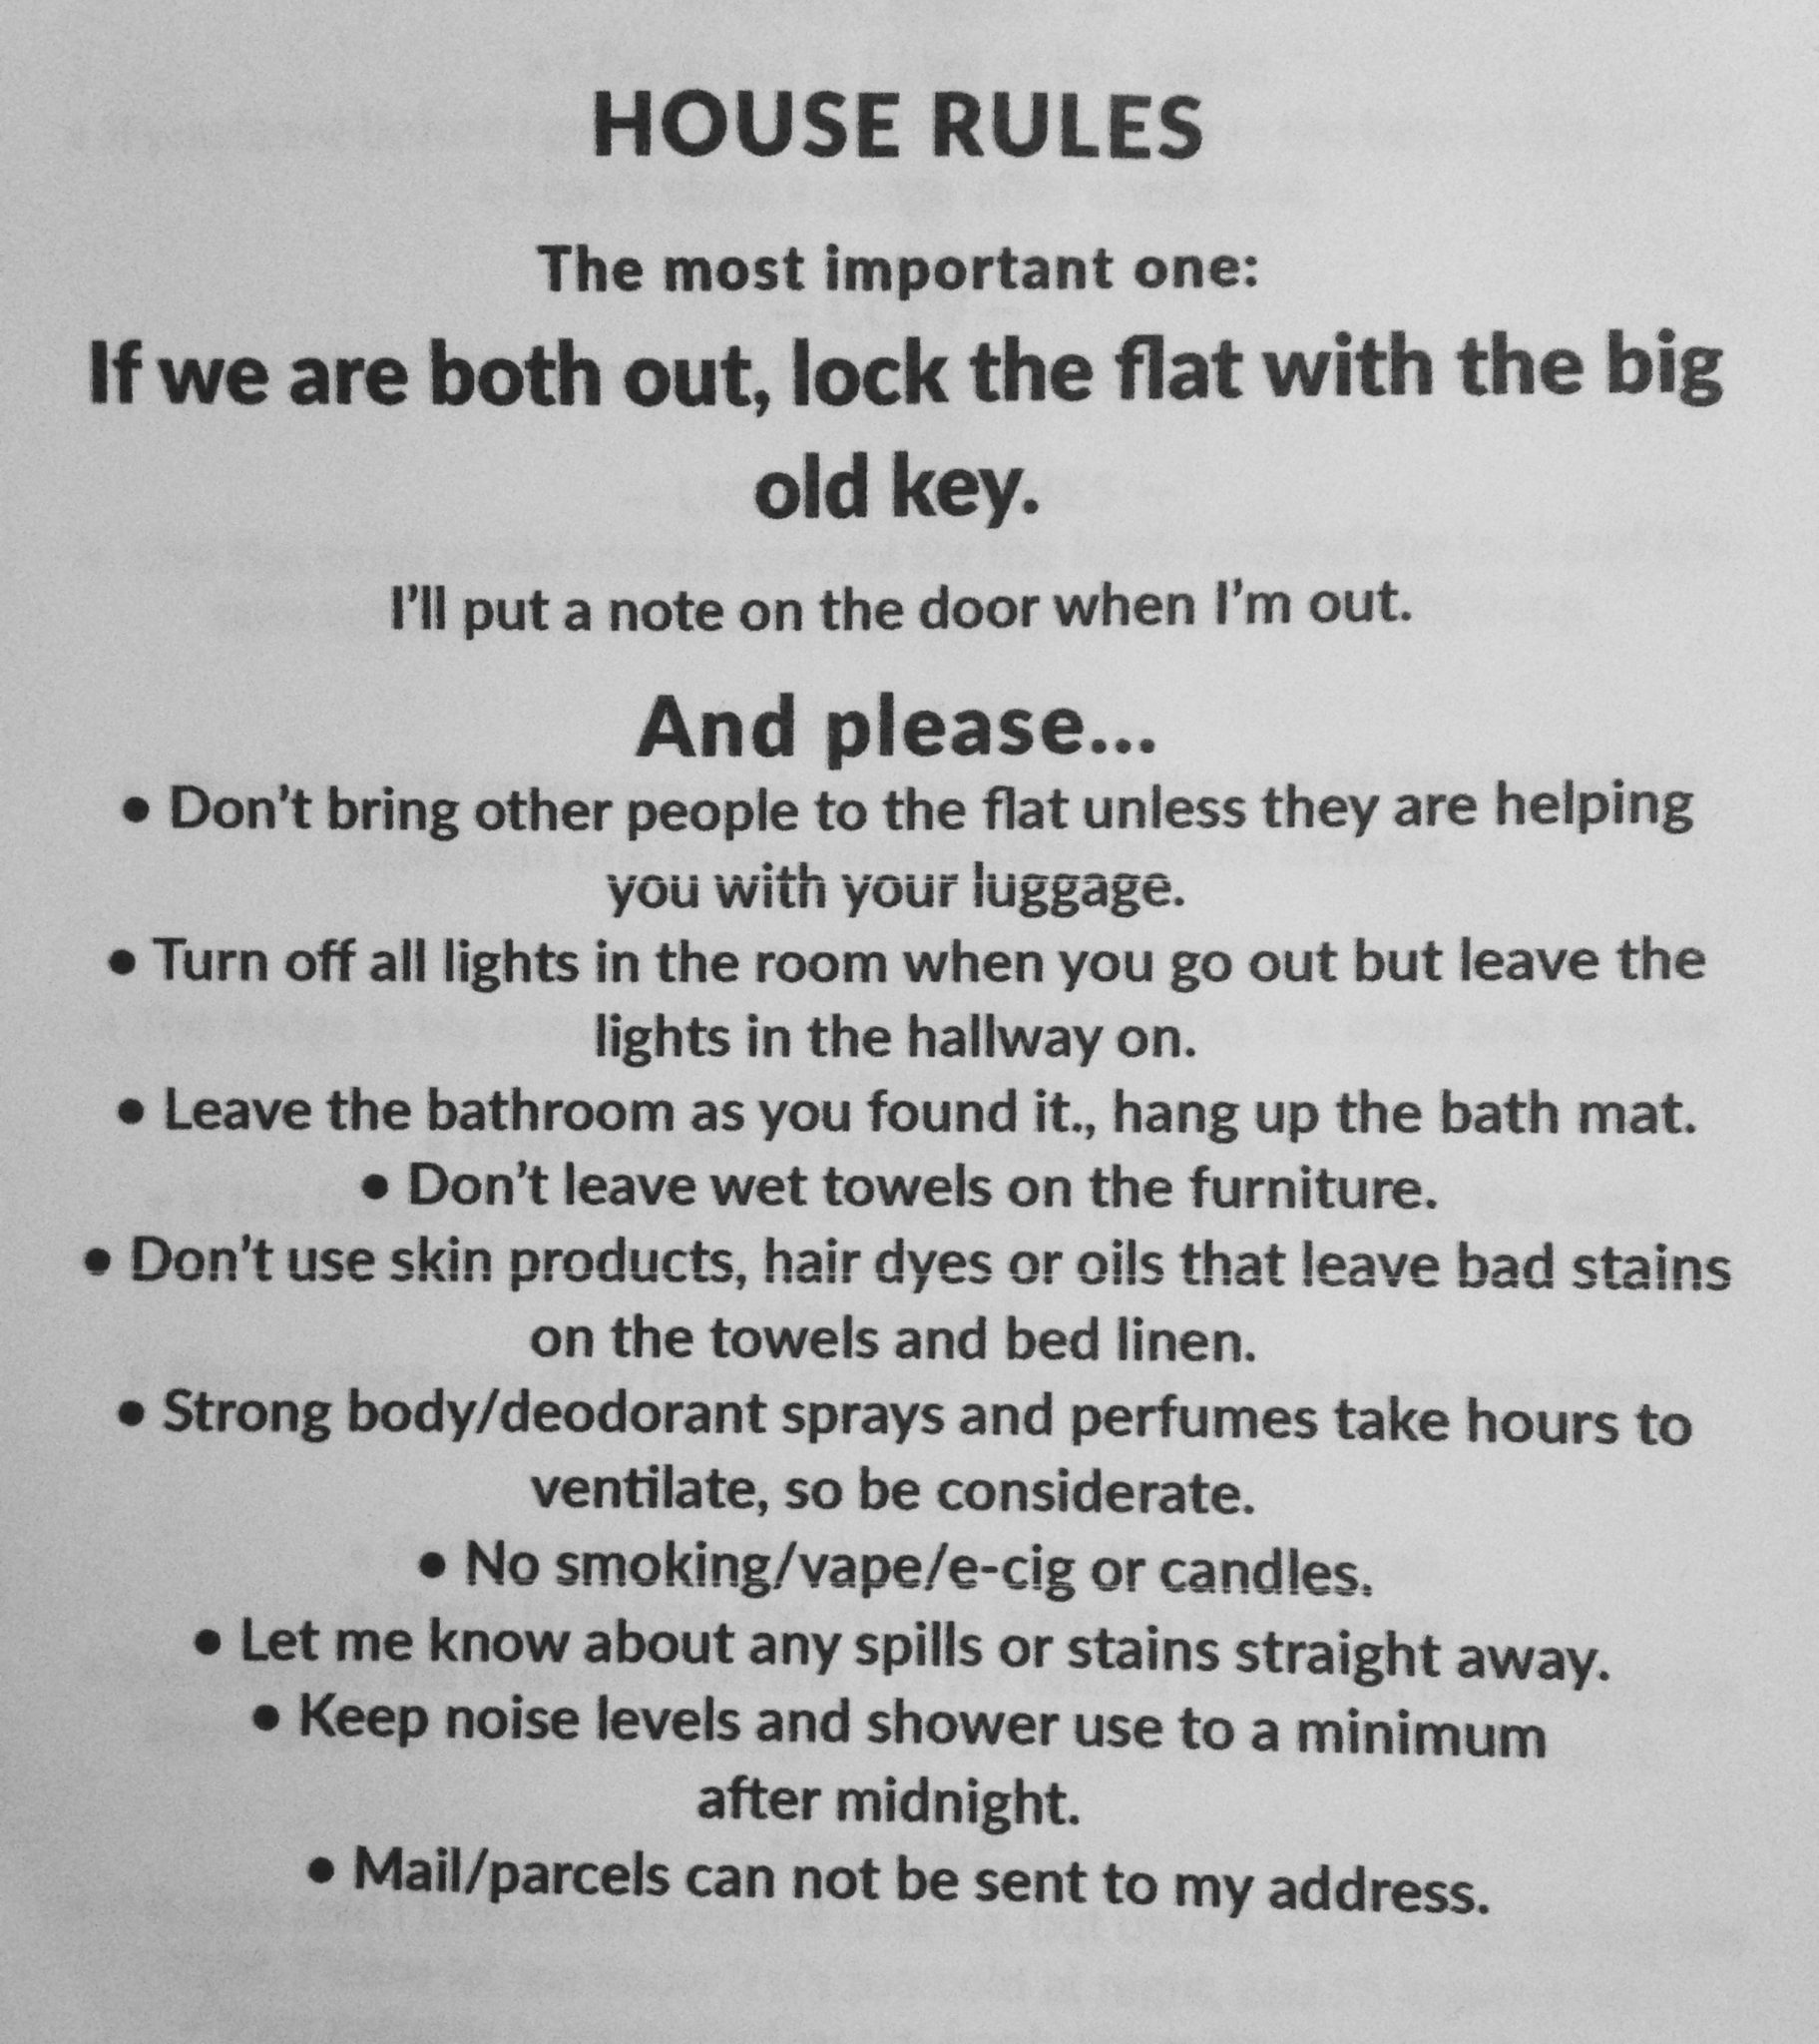 Airbnb House Rules - a Sample